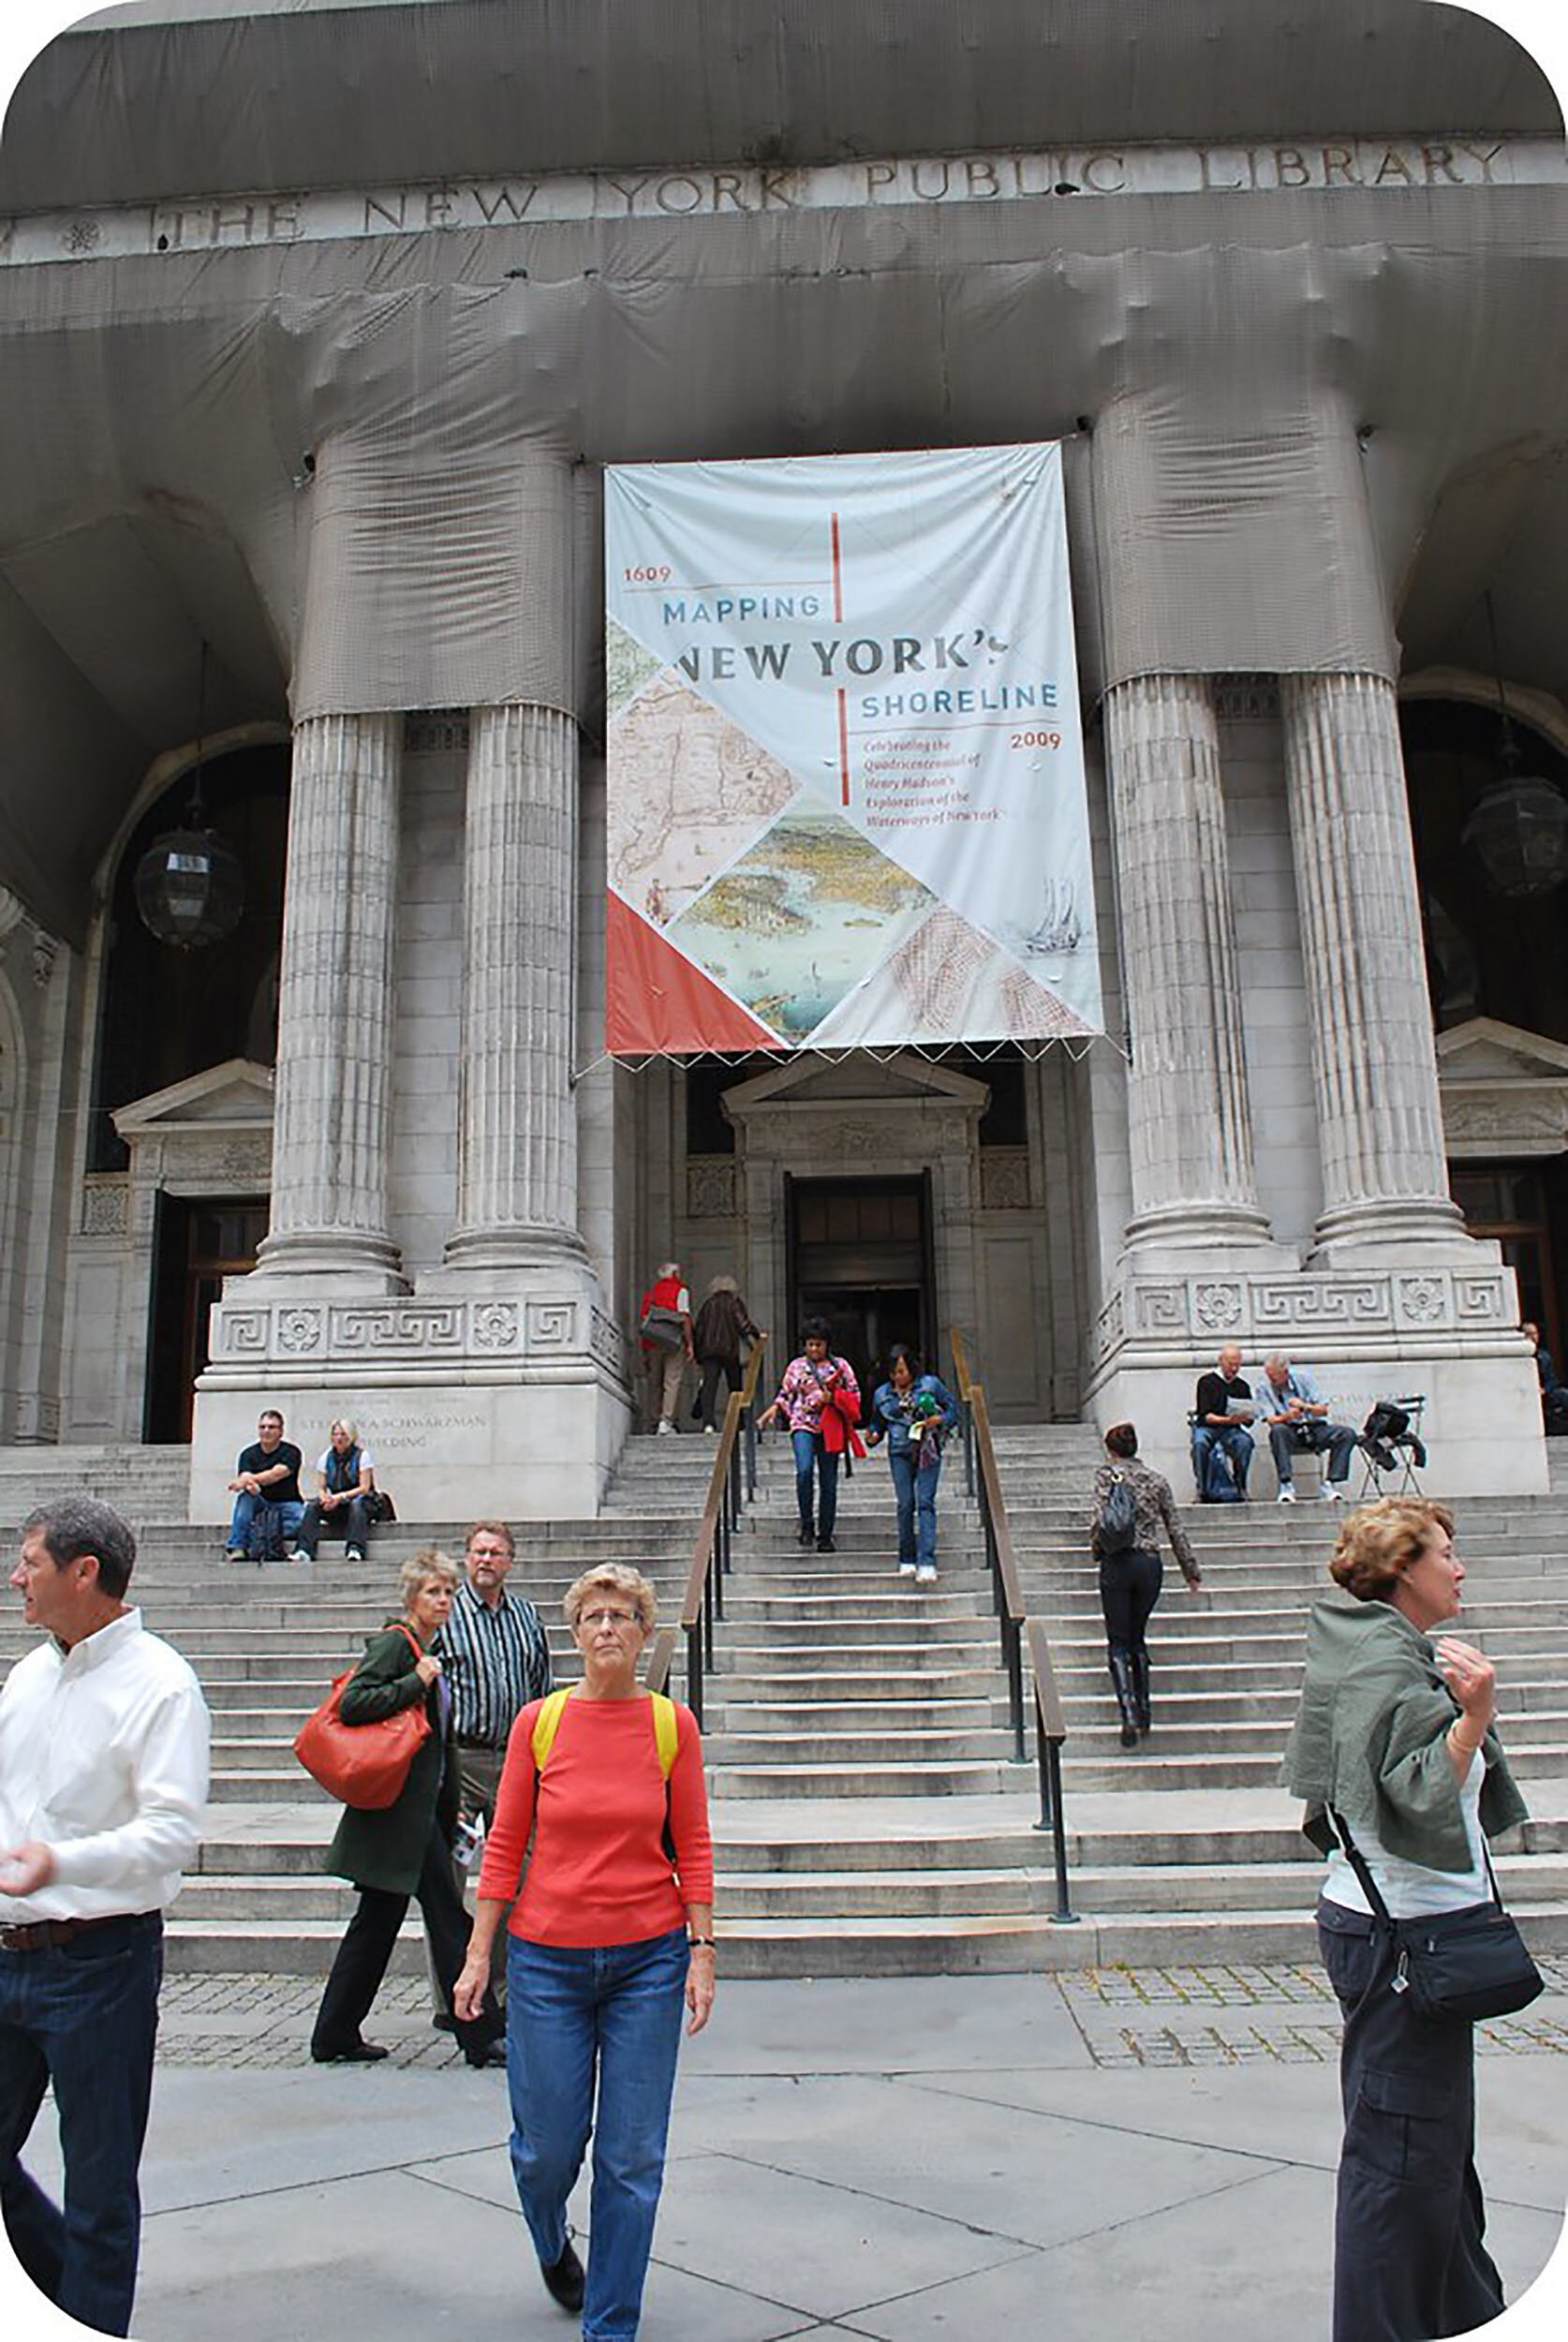 Public libraries (such as The New York Public Library, pictured above) are decreasing at an alarming rate in the U.S. Librarians have proven to help improve standardized test scores, so their employment is vital to our community. The goverment should allocate more money towards the rejuvenation of libraries. (Piloy Girl/wikimedia commons)